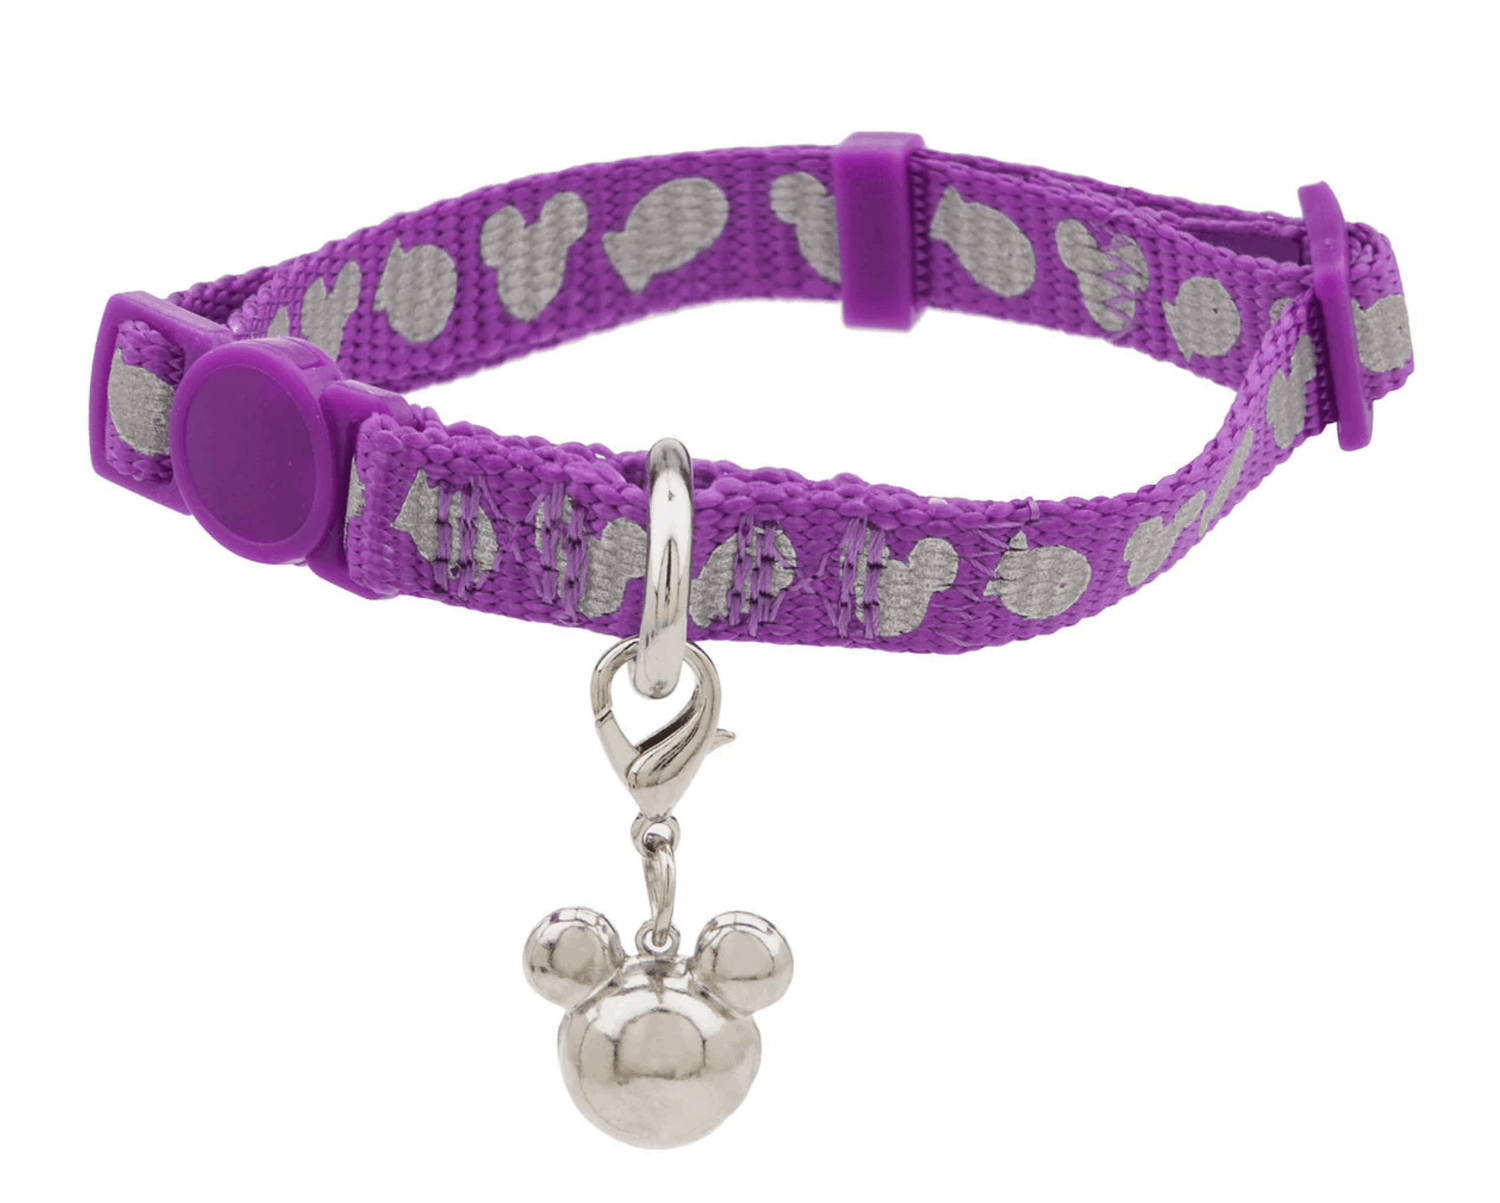 The Purrrfect Disney Cat Gifts 17